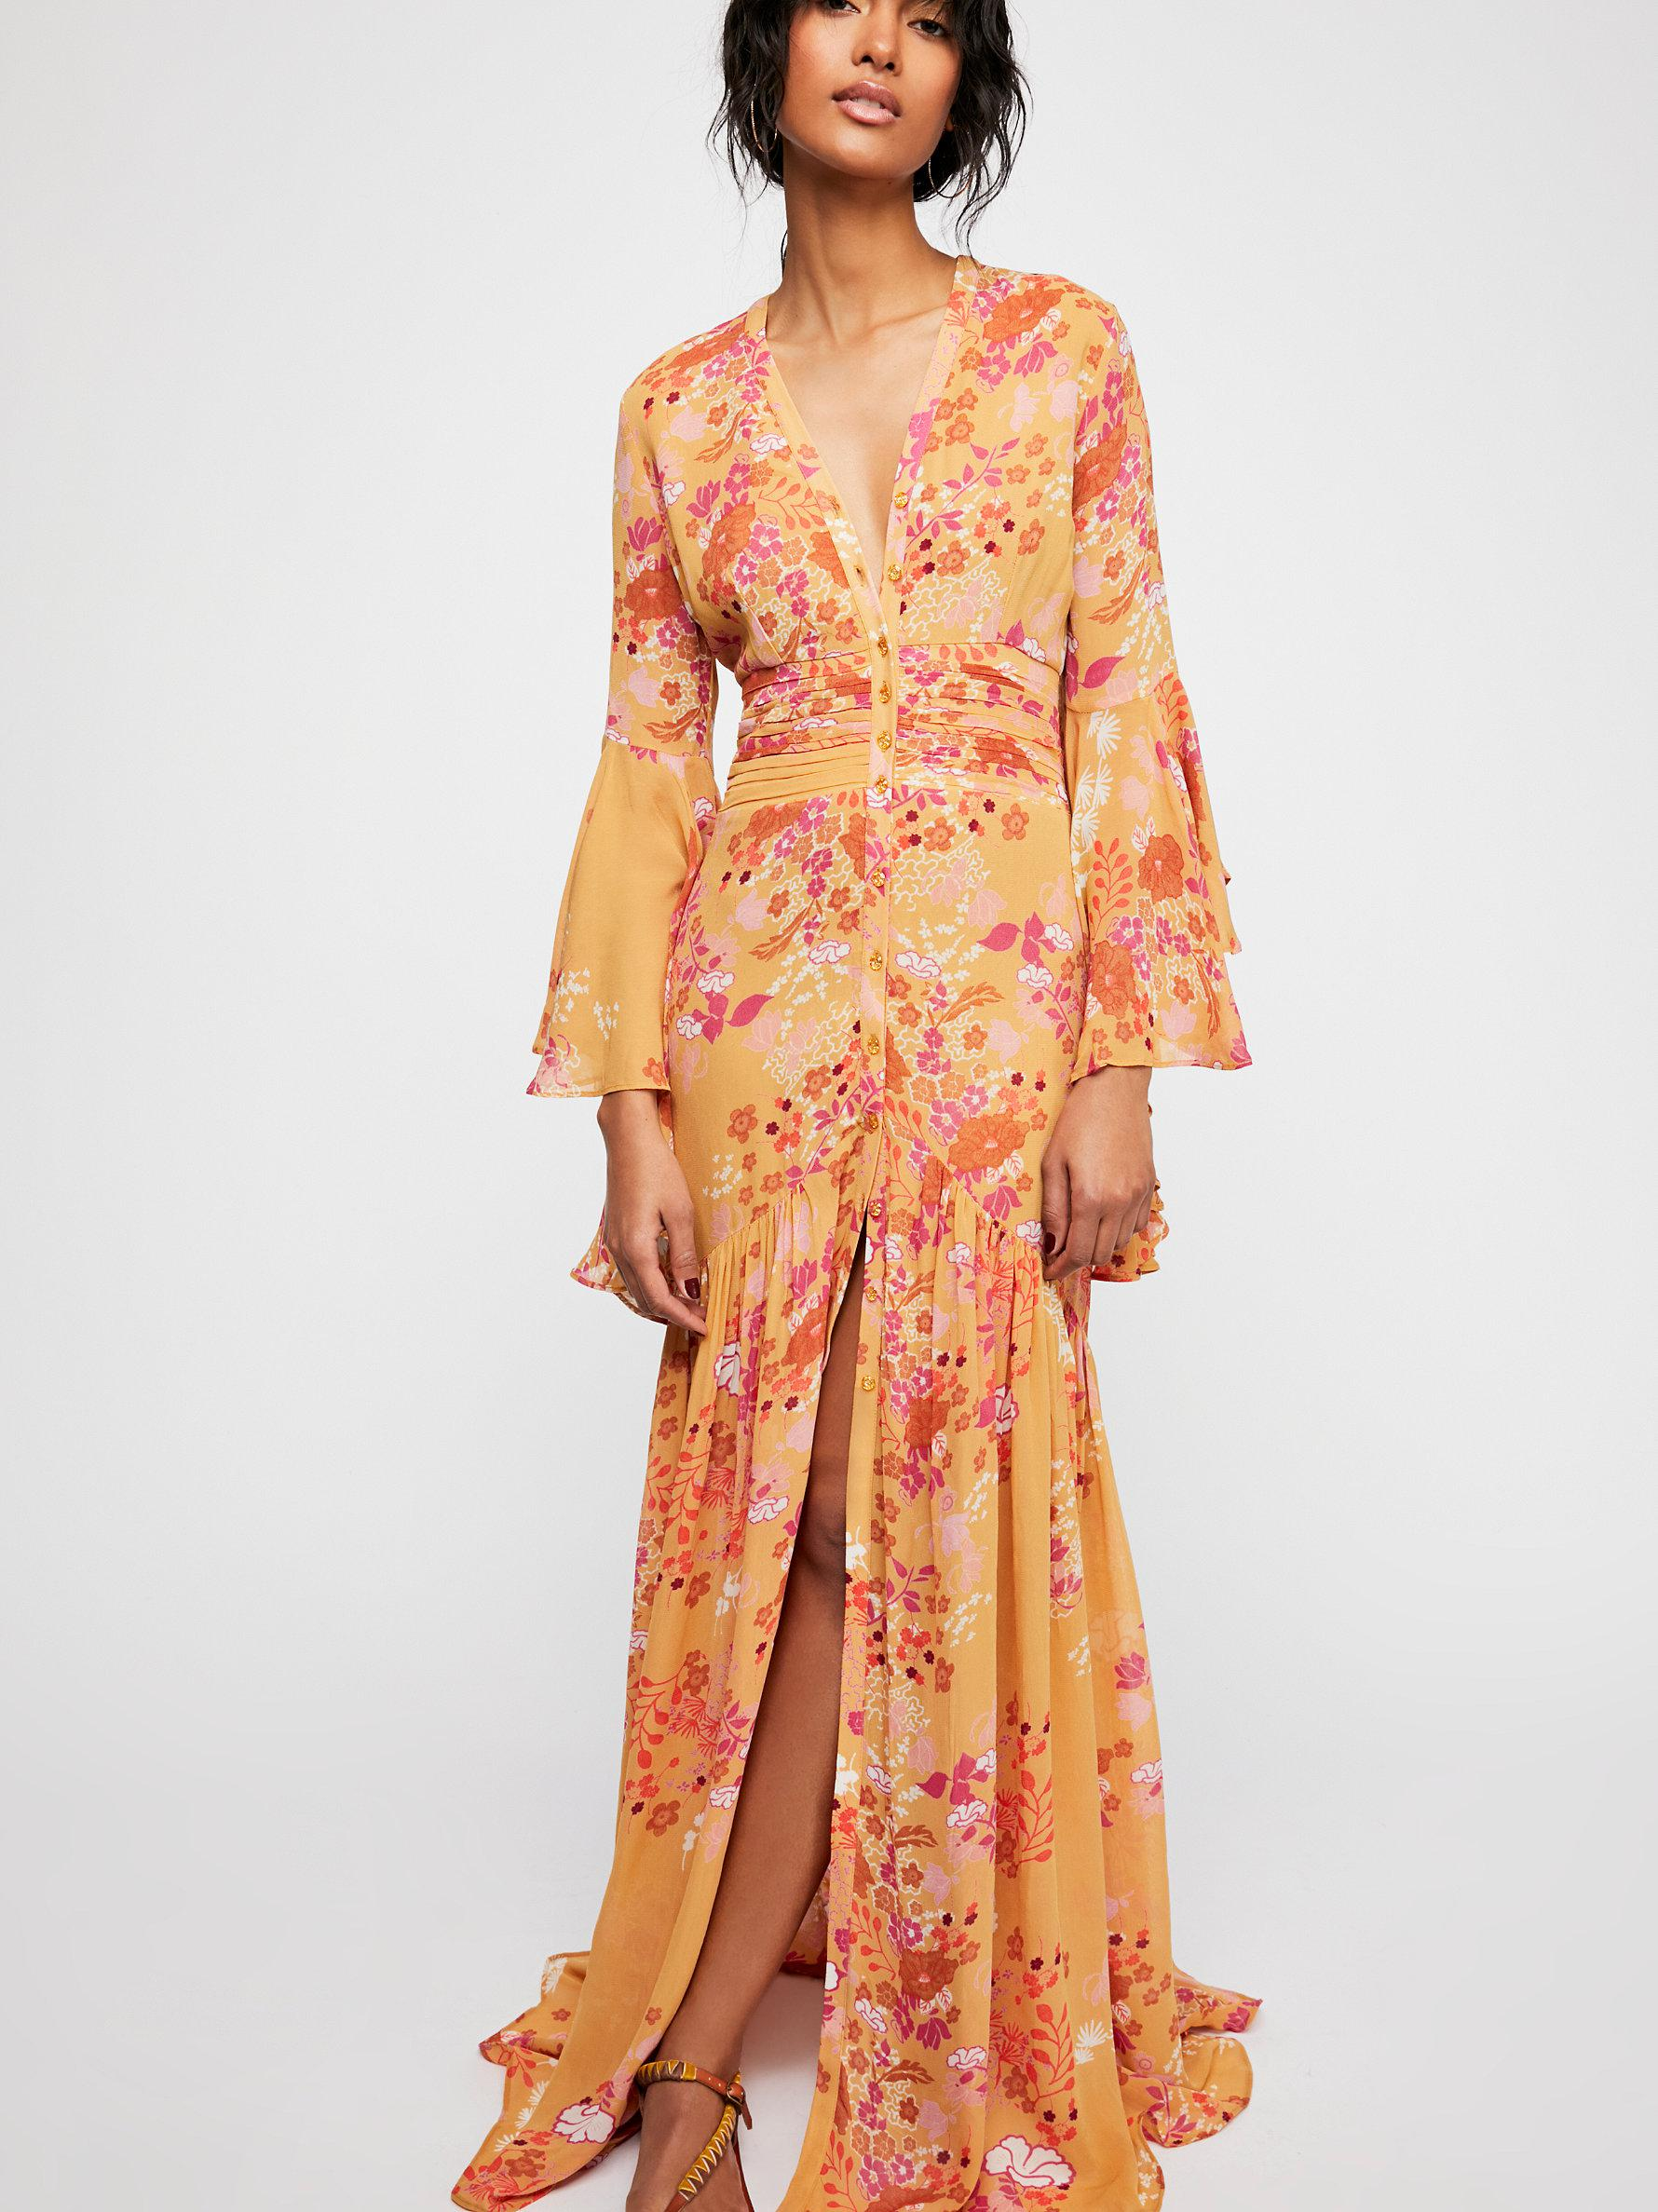 93001e65 Free People Semi Couture Gown in Orange - Lyst